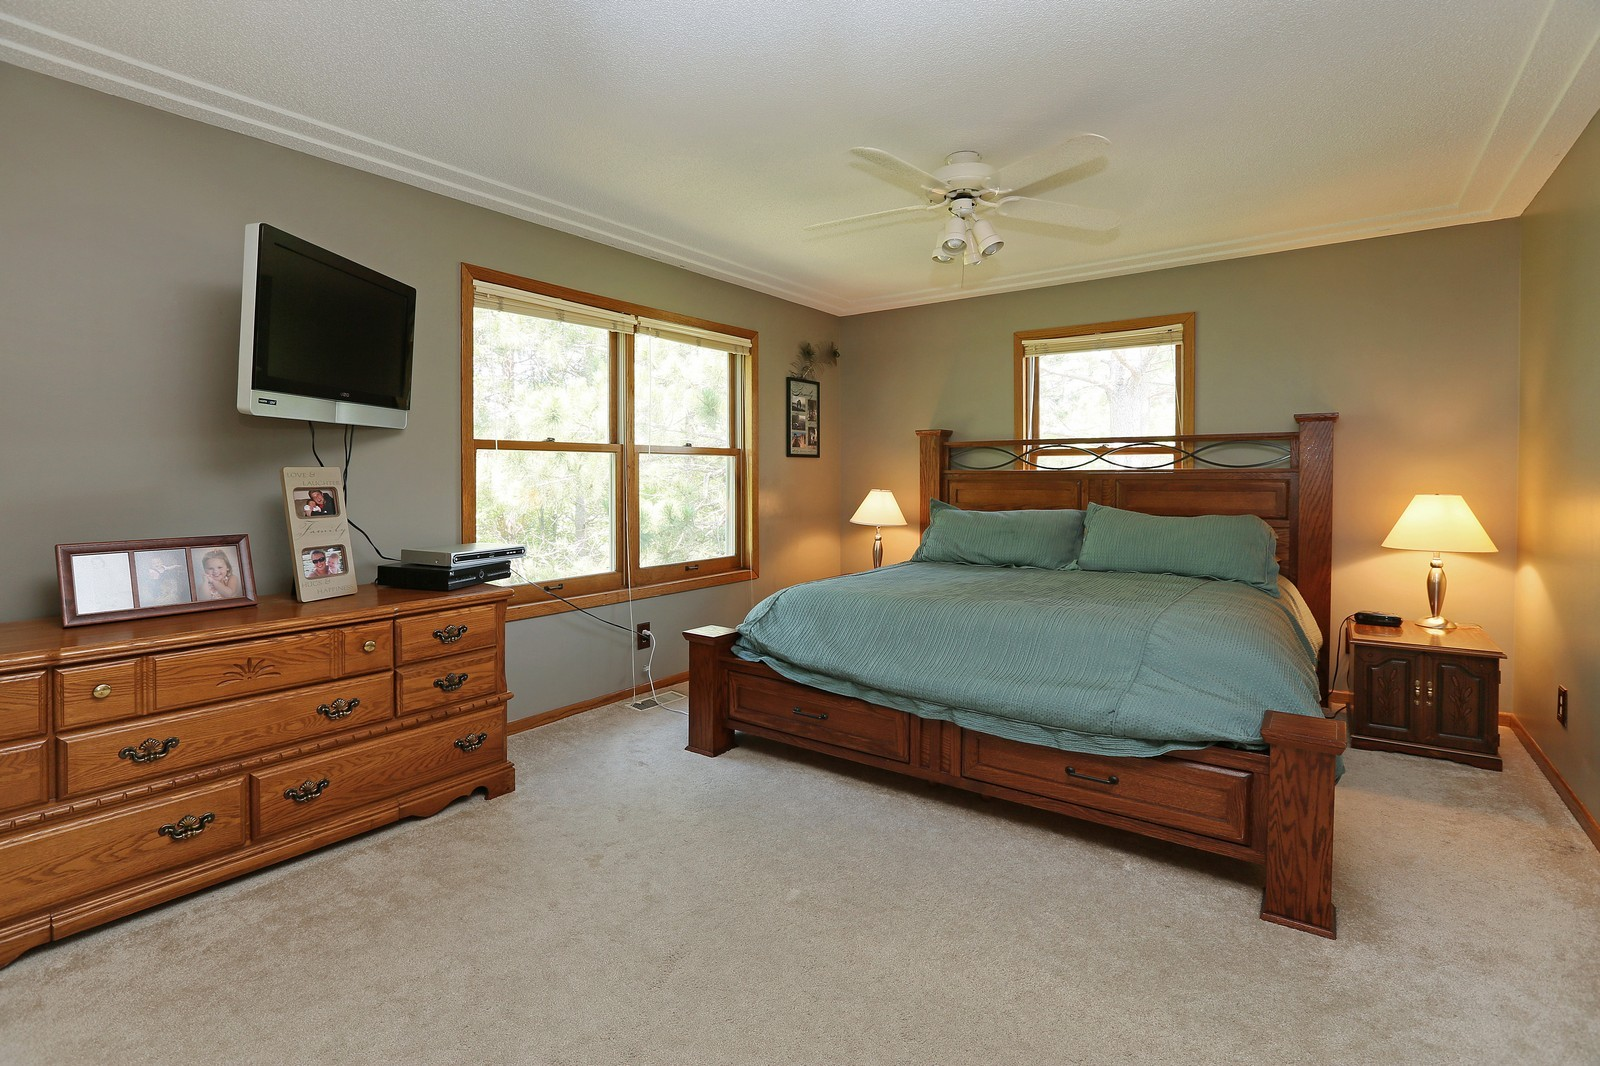 Real Estate Photography - 25917 Xylite St NE, Isanti, MN, 55040 - Master Bedroom